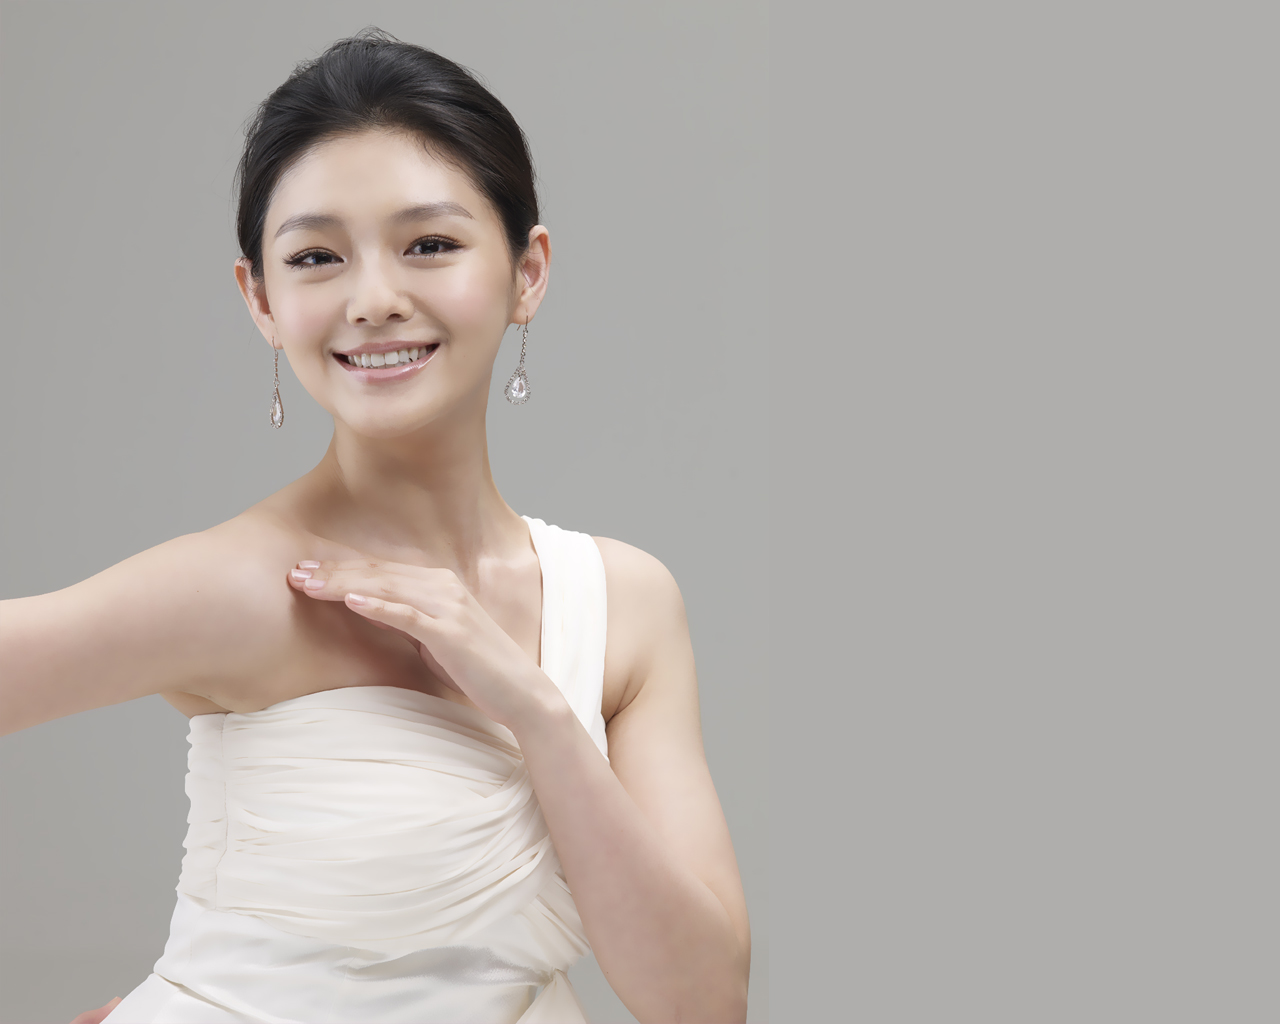 1280x1024 - Barbie Hsu Wallpapers 35